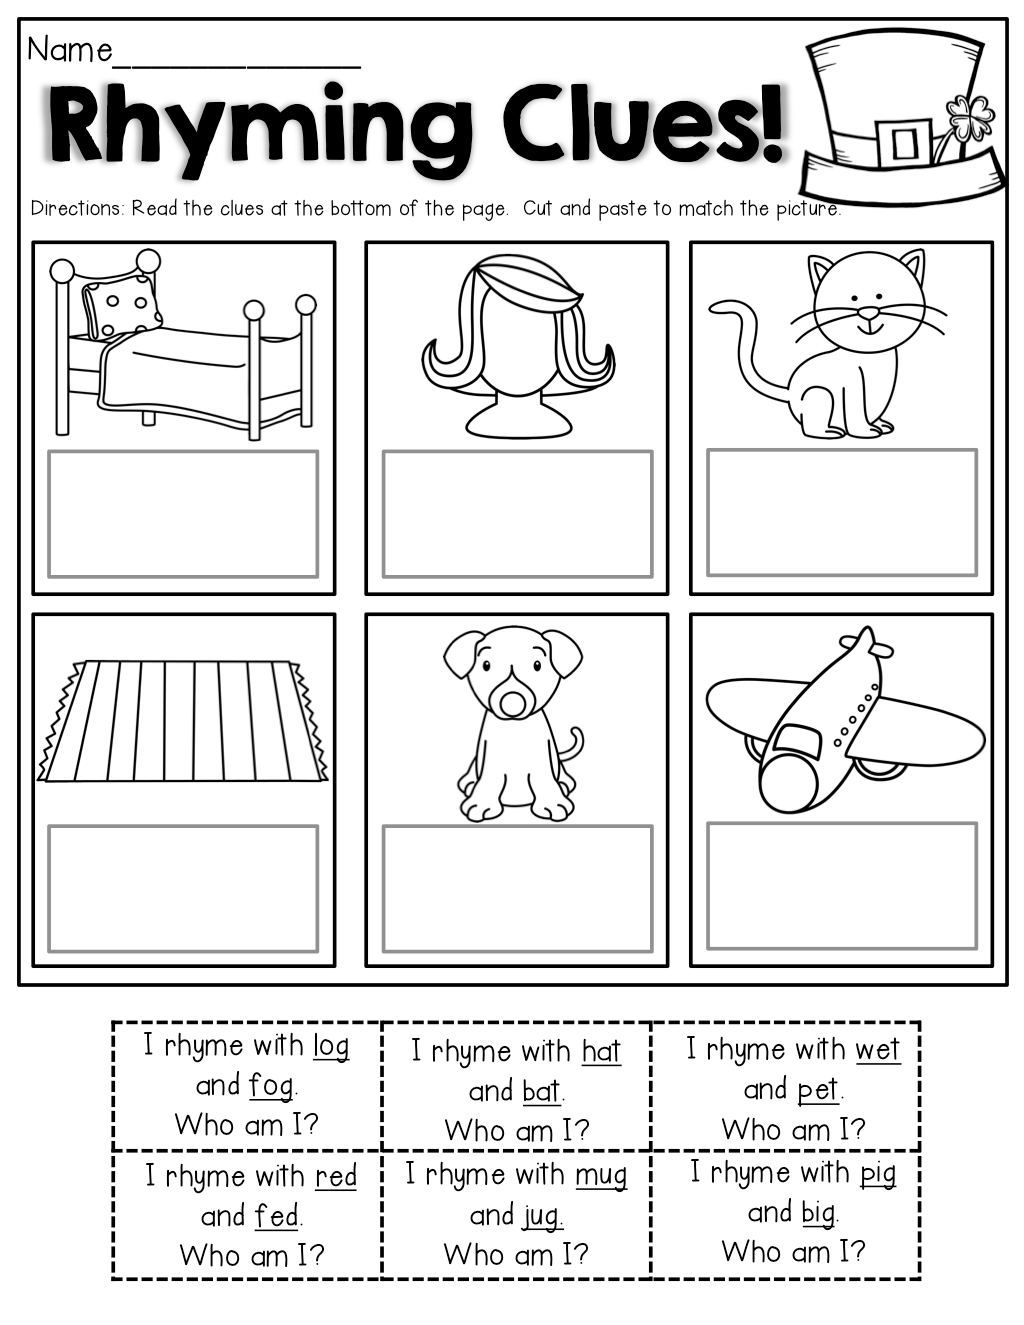 Rhyming Clues Read The Simple Sentences Clues And Cut And Paste To Match The Picture Perfect